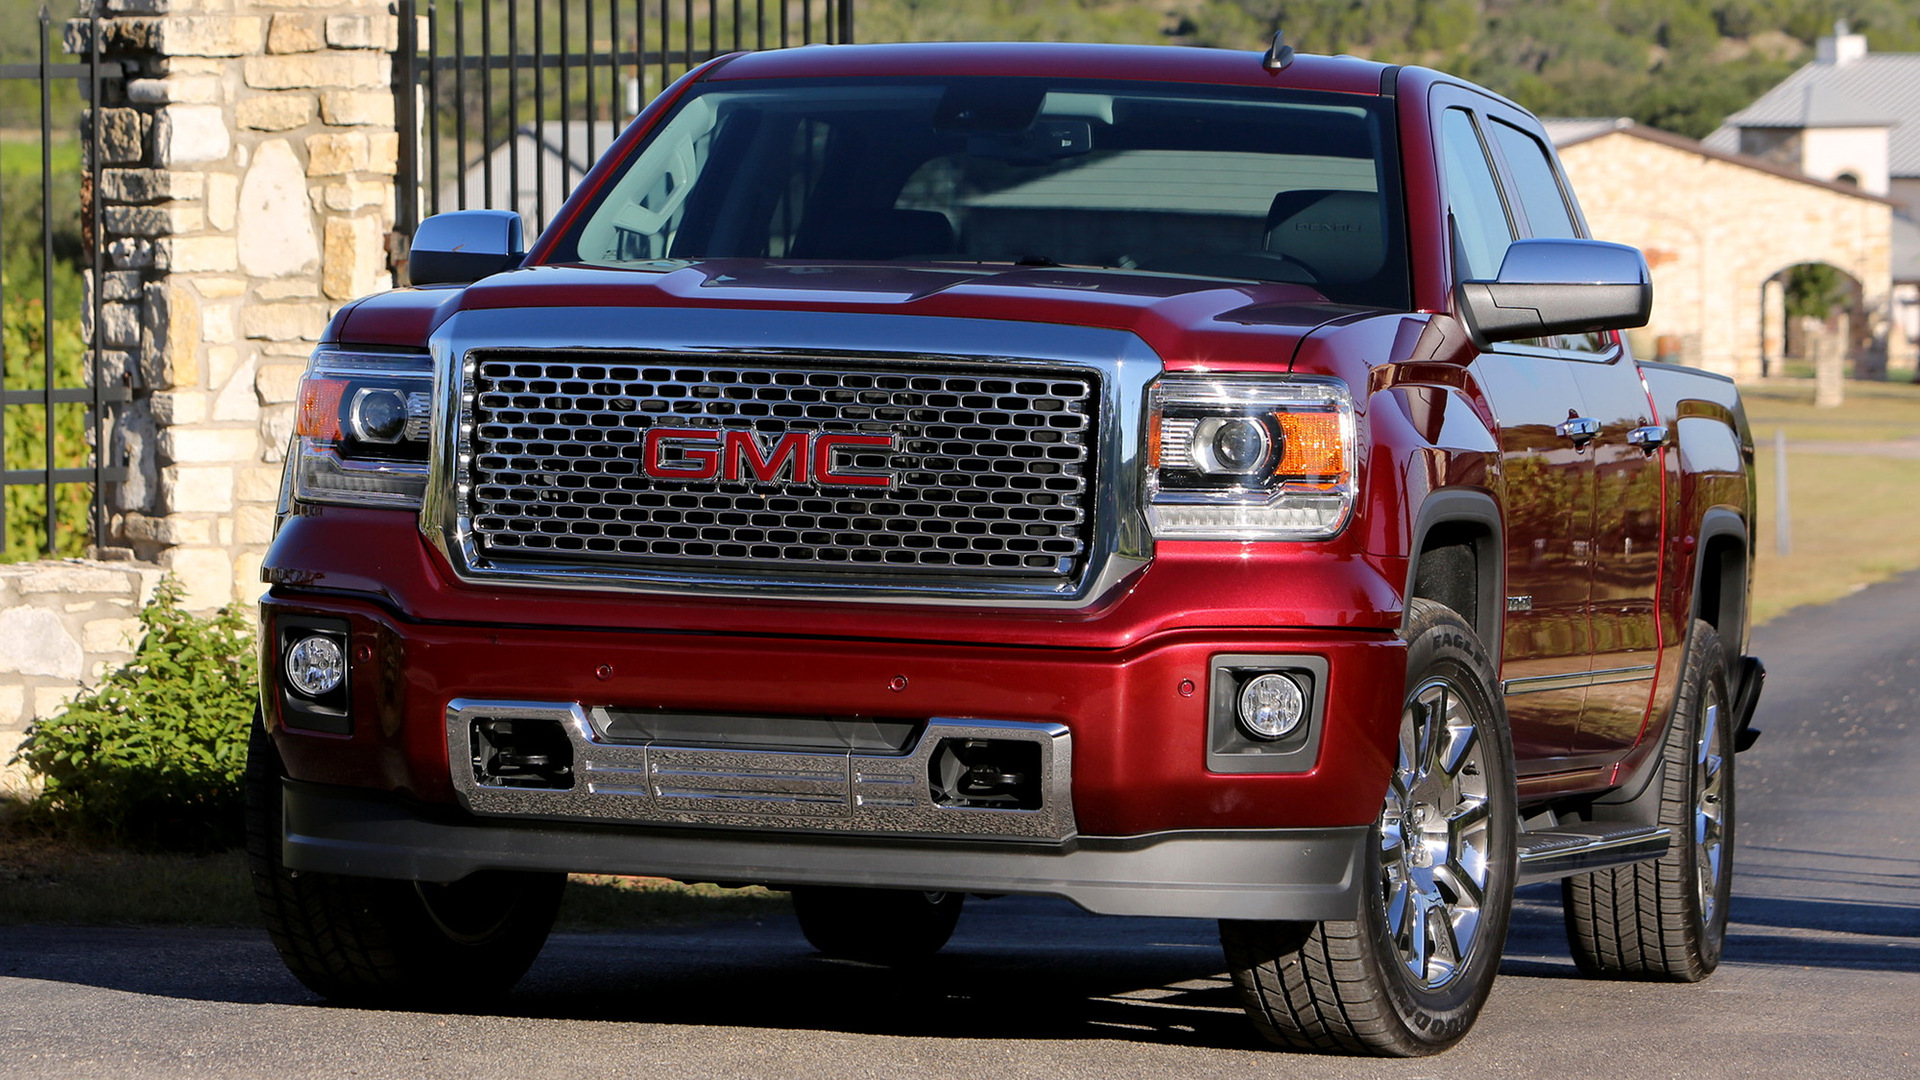 2017 GMC Sierra Denali 1500 Crew Cab photo - 1